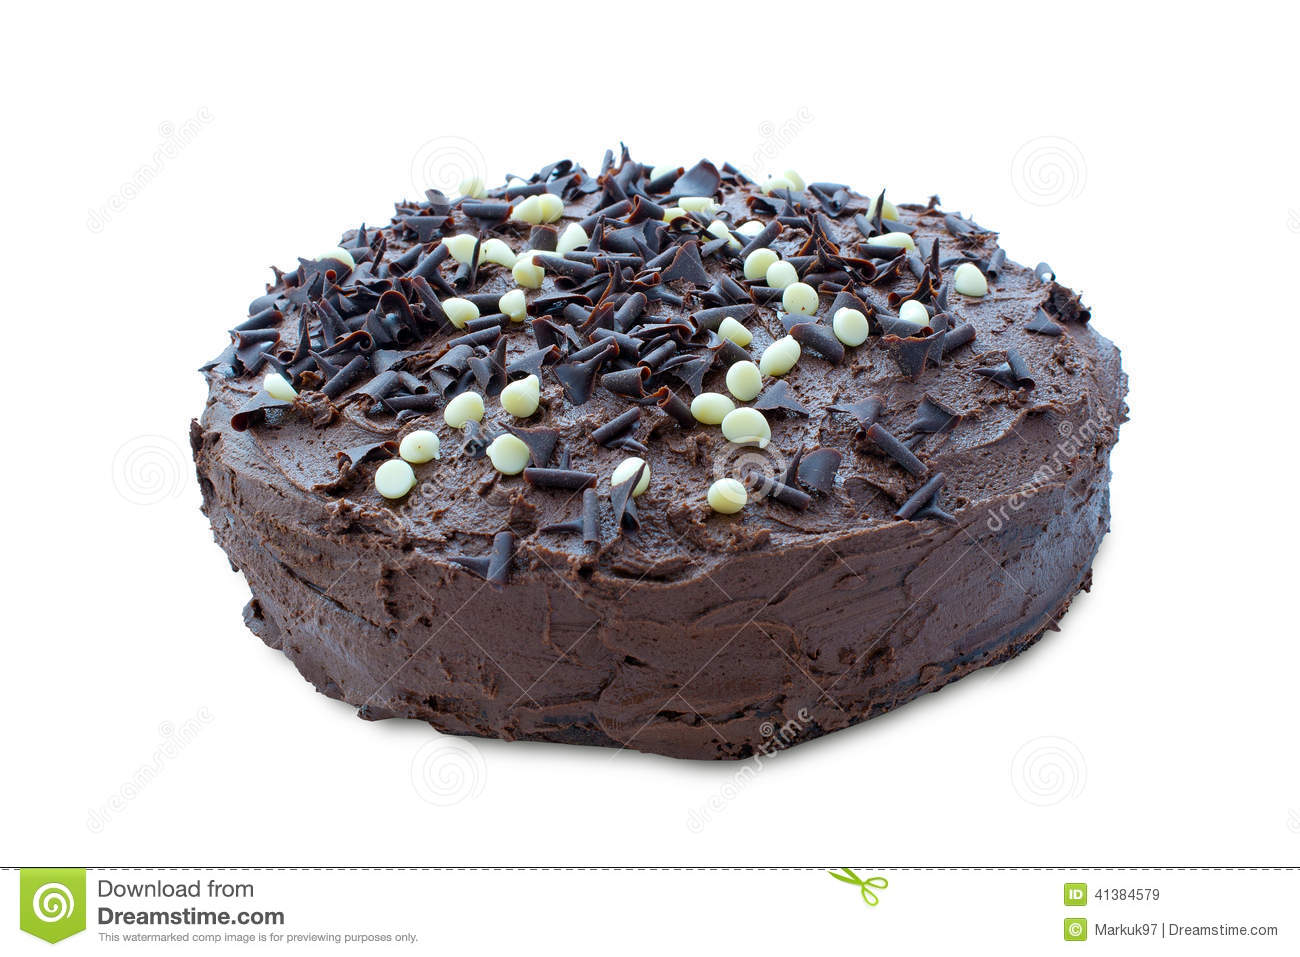 Calories In A Slice Of Chocolate Mud Cake